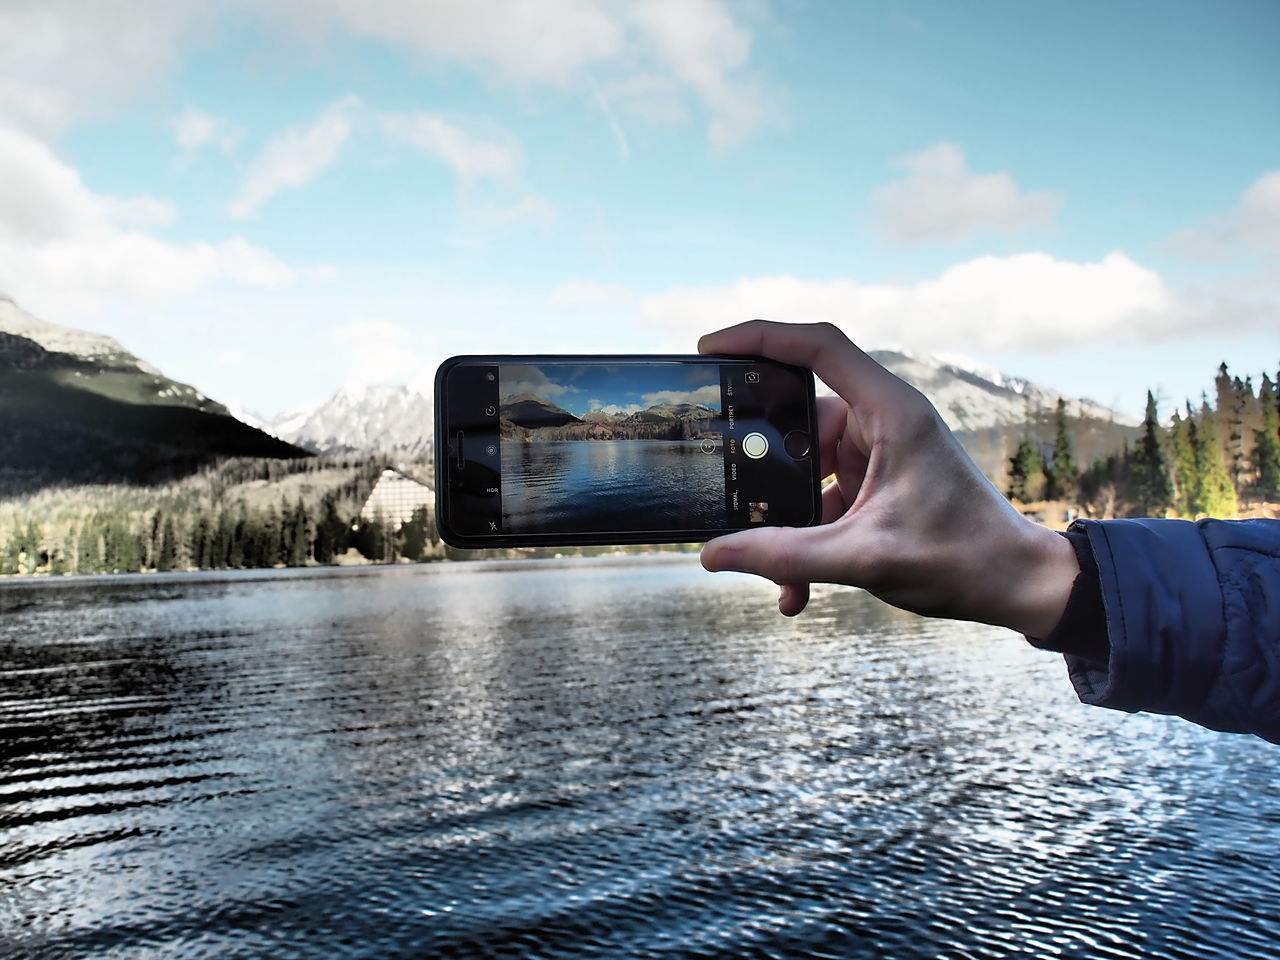 Day Human Hand IPhone Lake Nature Outdoors Smart Phone Strbske Pleso Travel Destinations Water